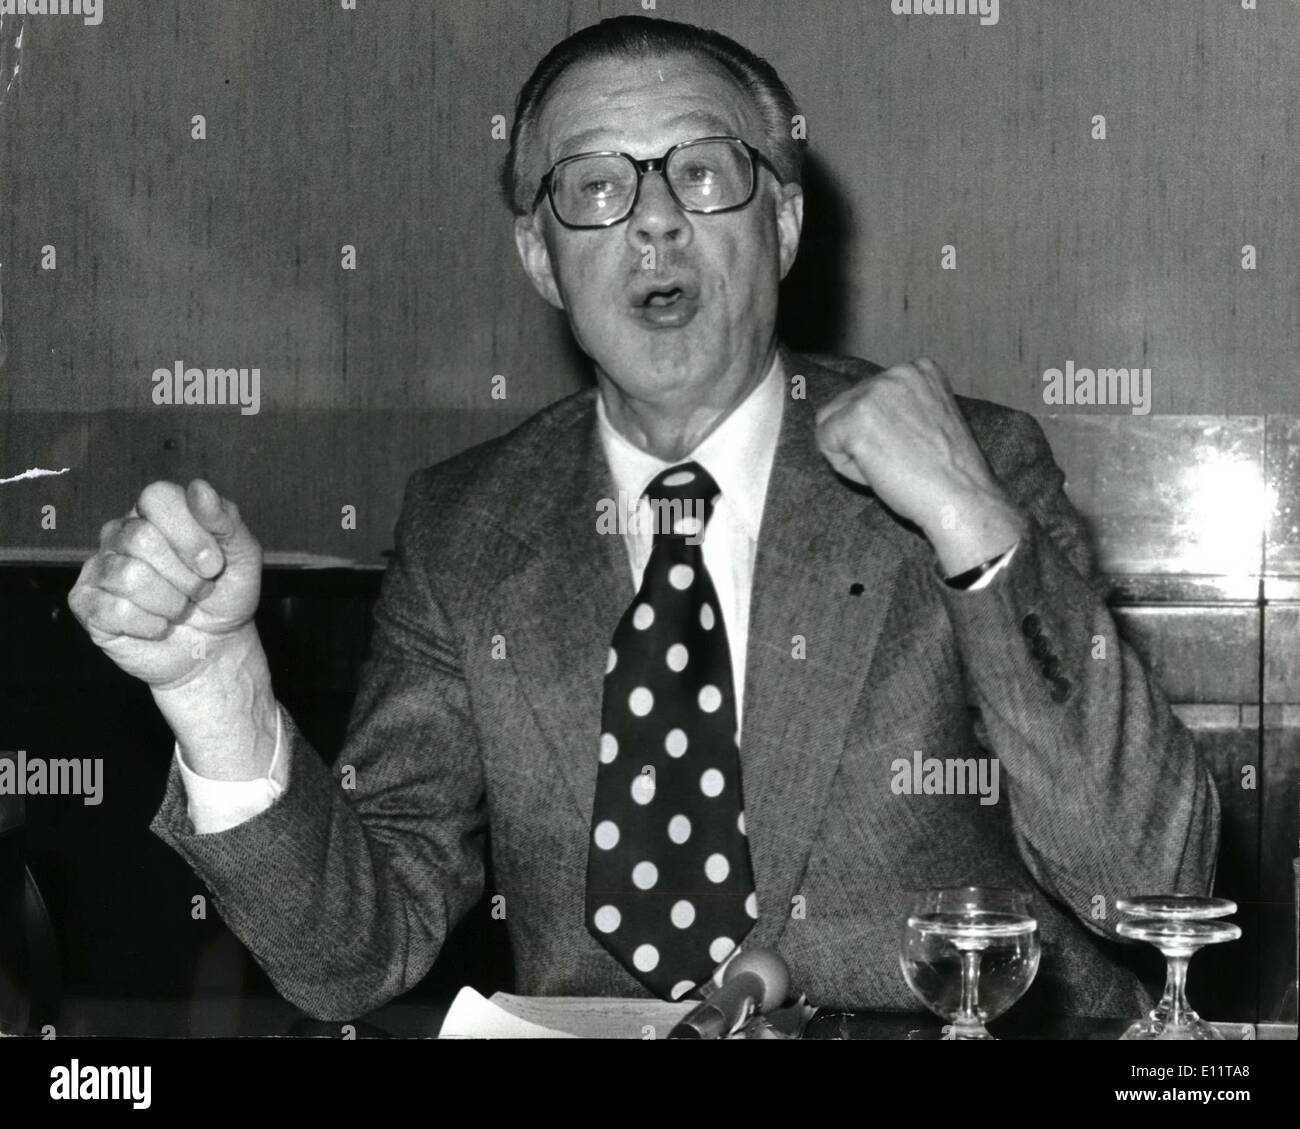 Feb. 20, 1980 - February 20th 1980 Sir Charles Villiers in a fighting mood. An angry Sir Charles Villiers, chairman - Stock Image